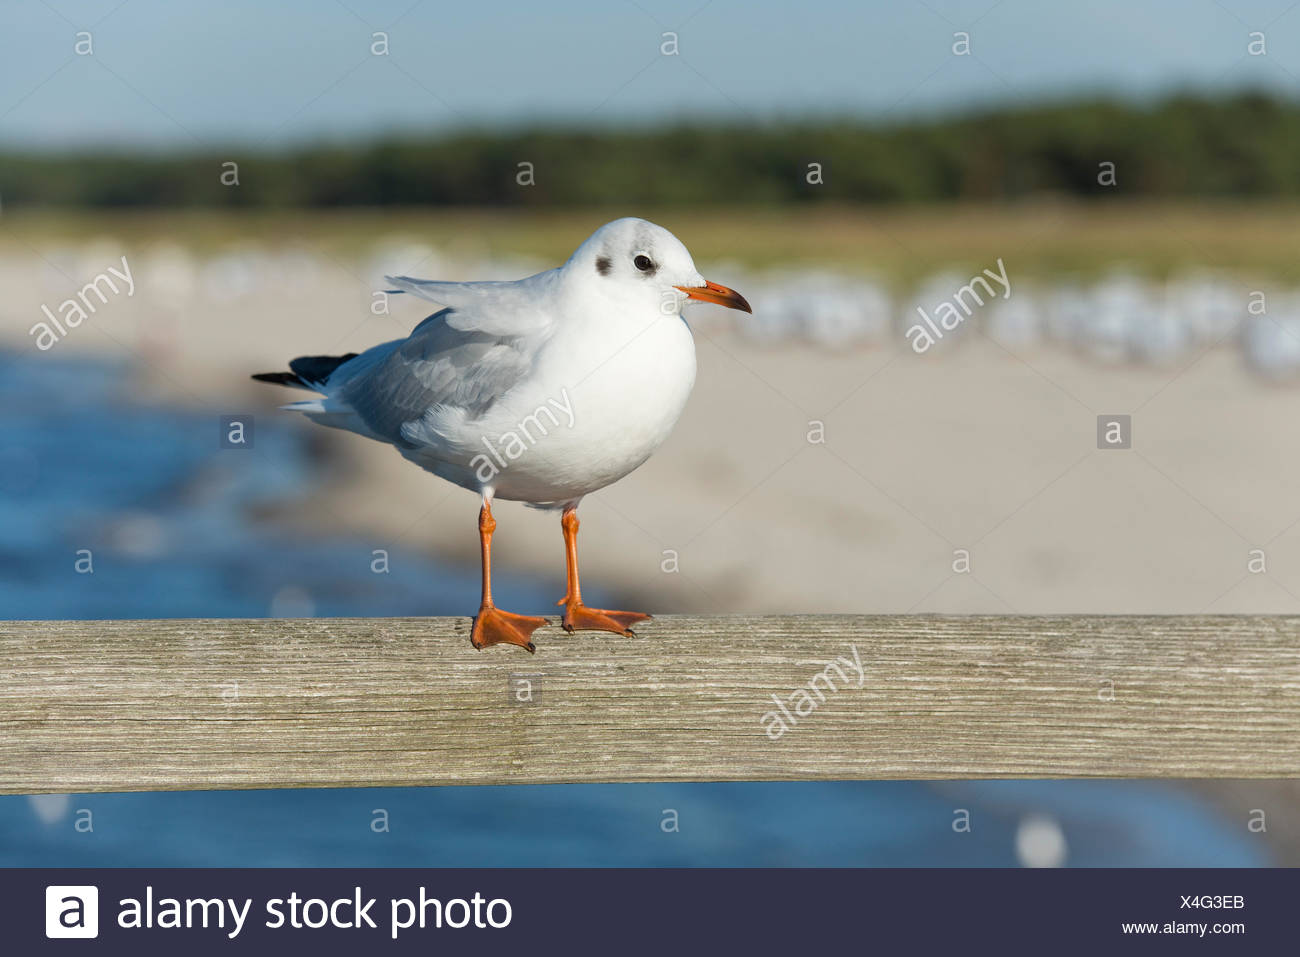 Black-headed Gull (Larus ridibundus, Chroicocephalus ridibundus), perched on the railing of Prerow Pier - Stock Image